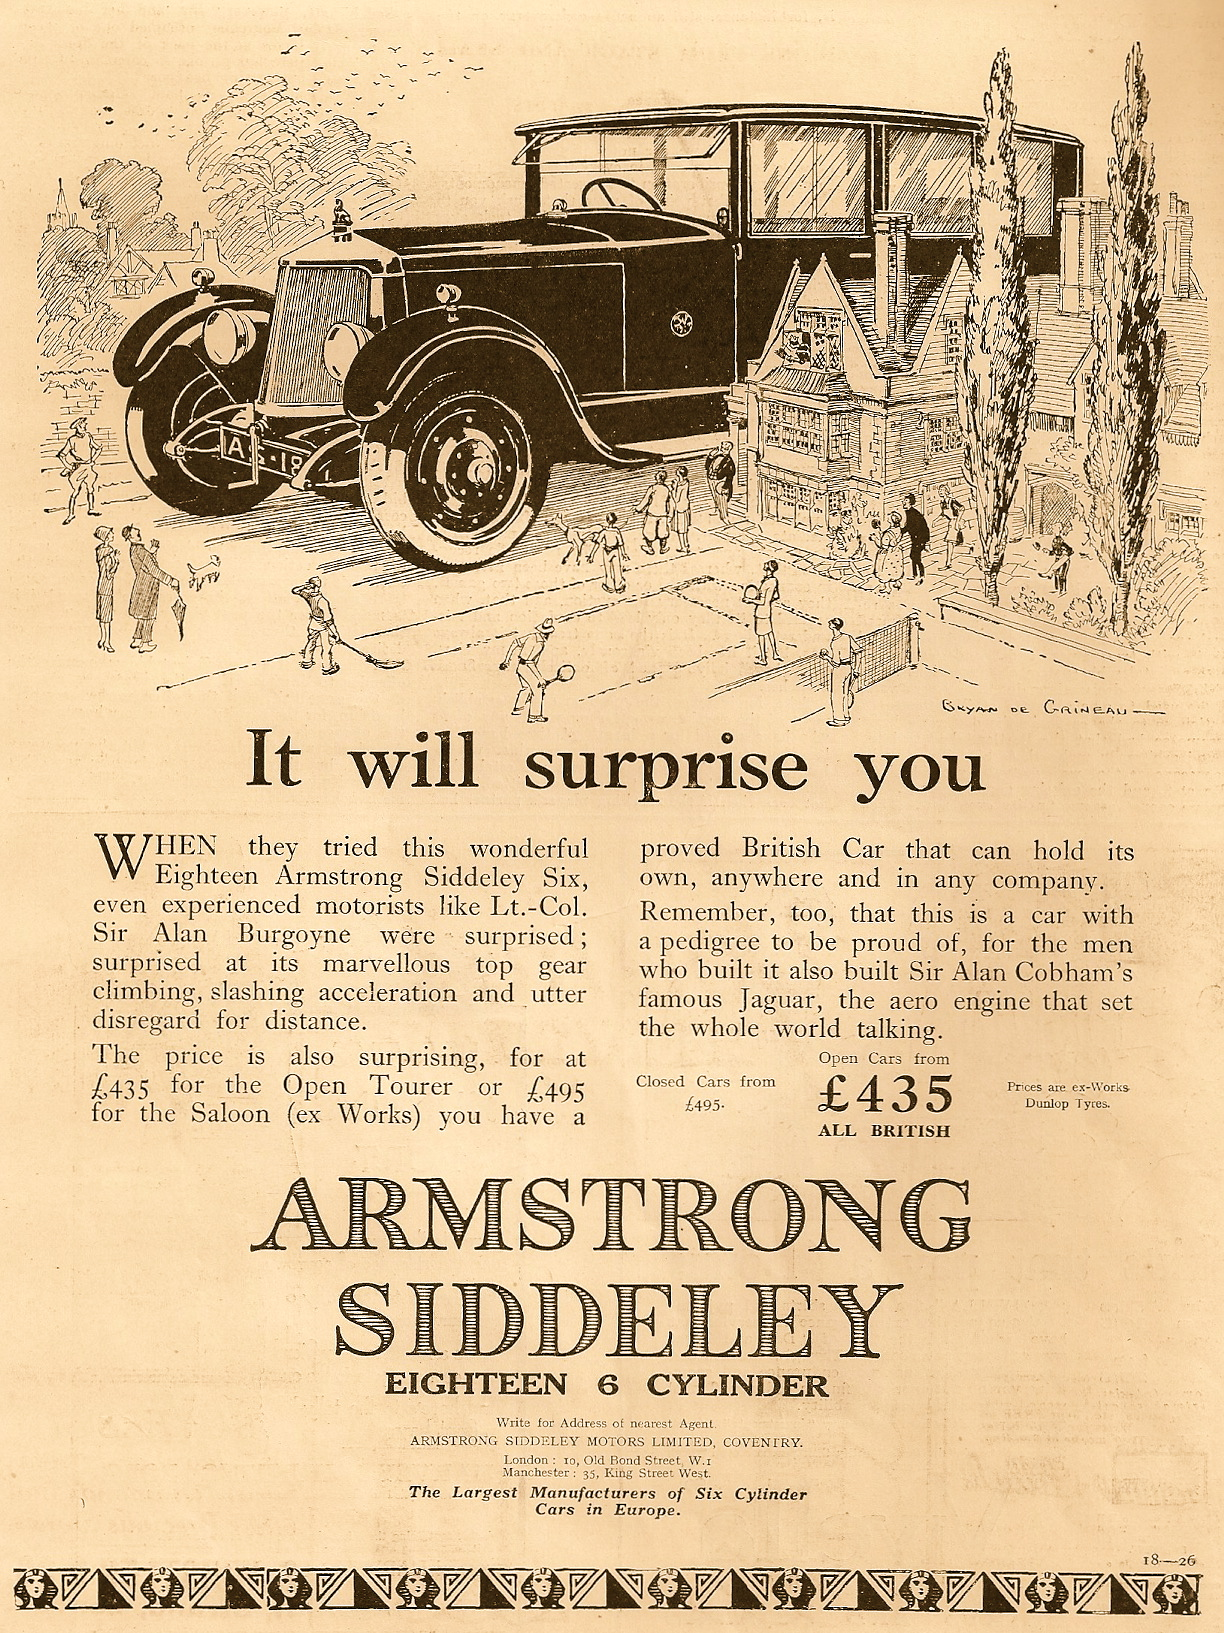 Bryan De Grineau drawing for Armstrong Siddeley 1927